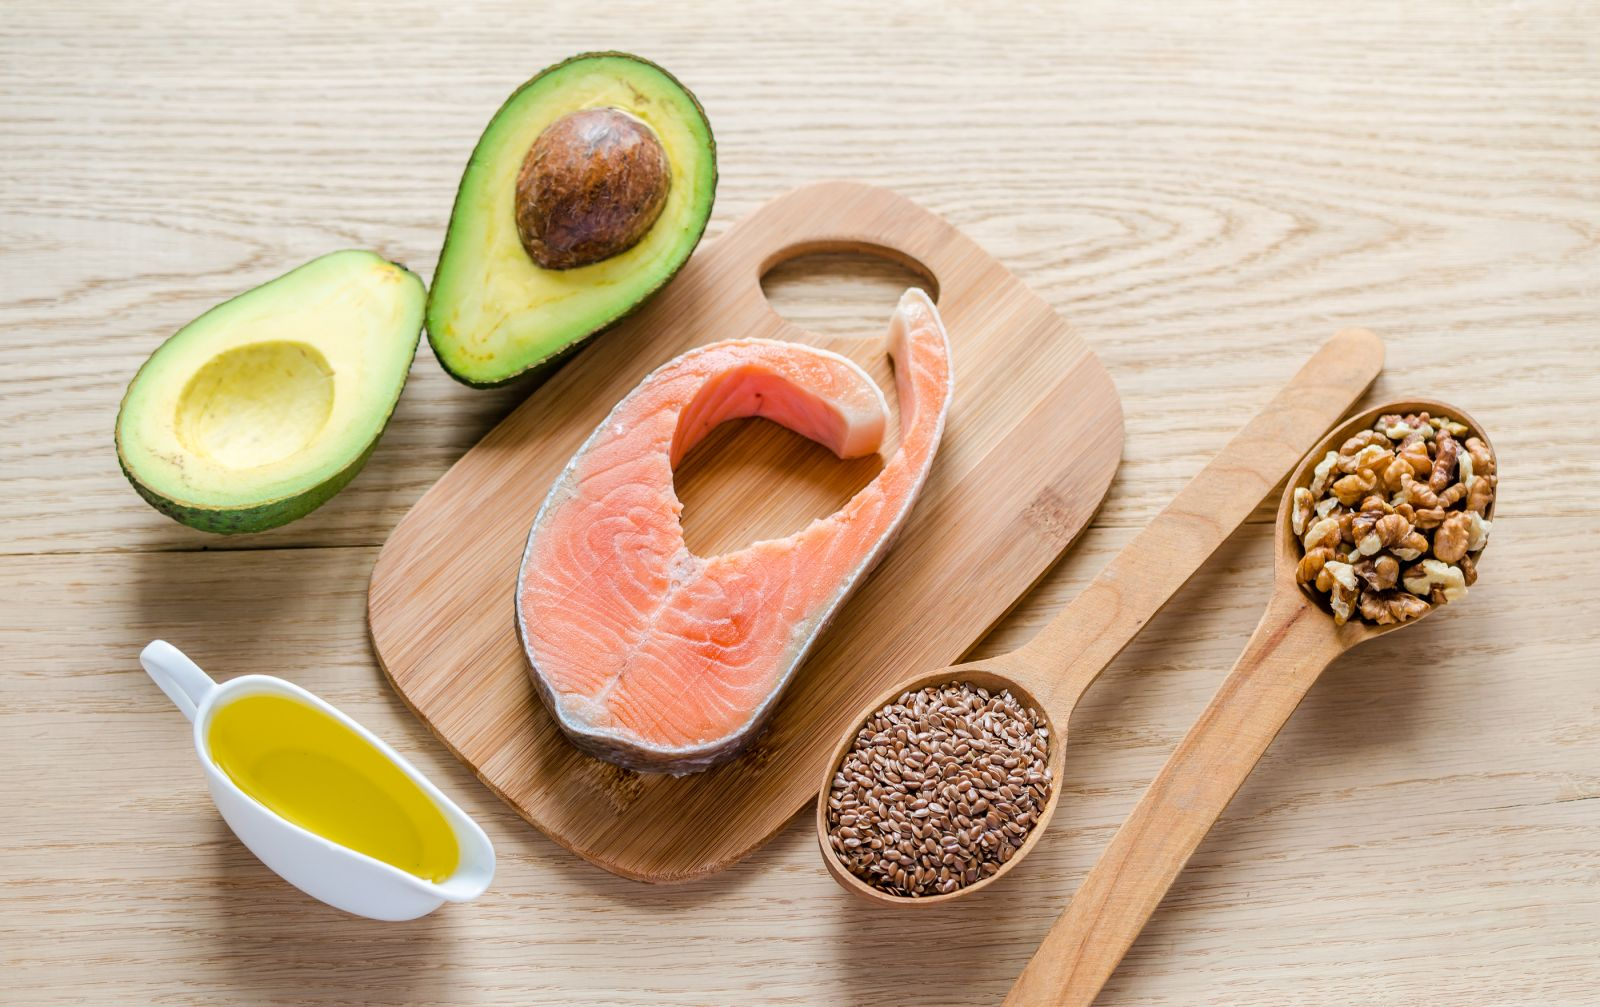 http://www.health.harvard.edu/media/content/images/bigstock-Food-fish-Unsaturated-Fats-52226848.jpg